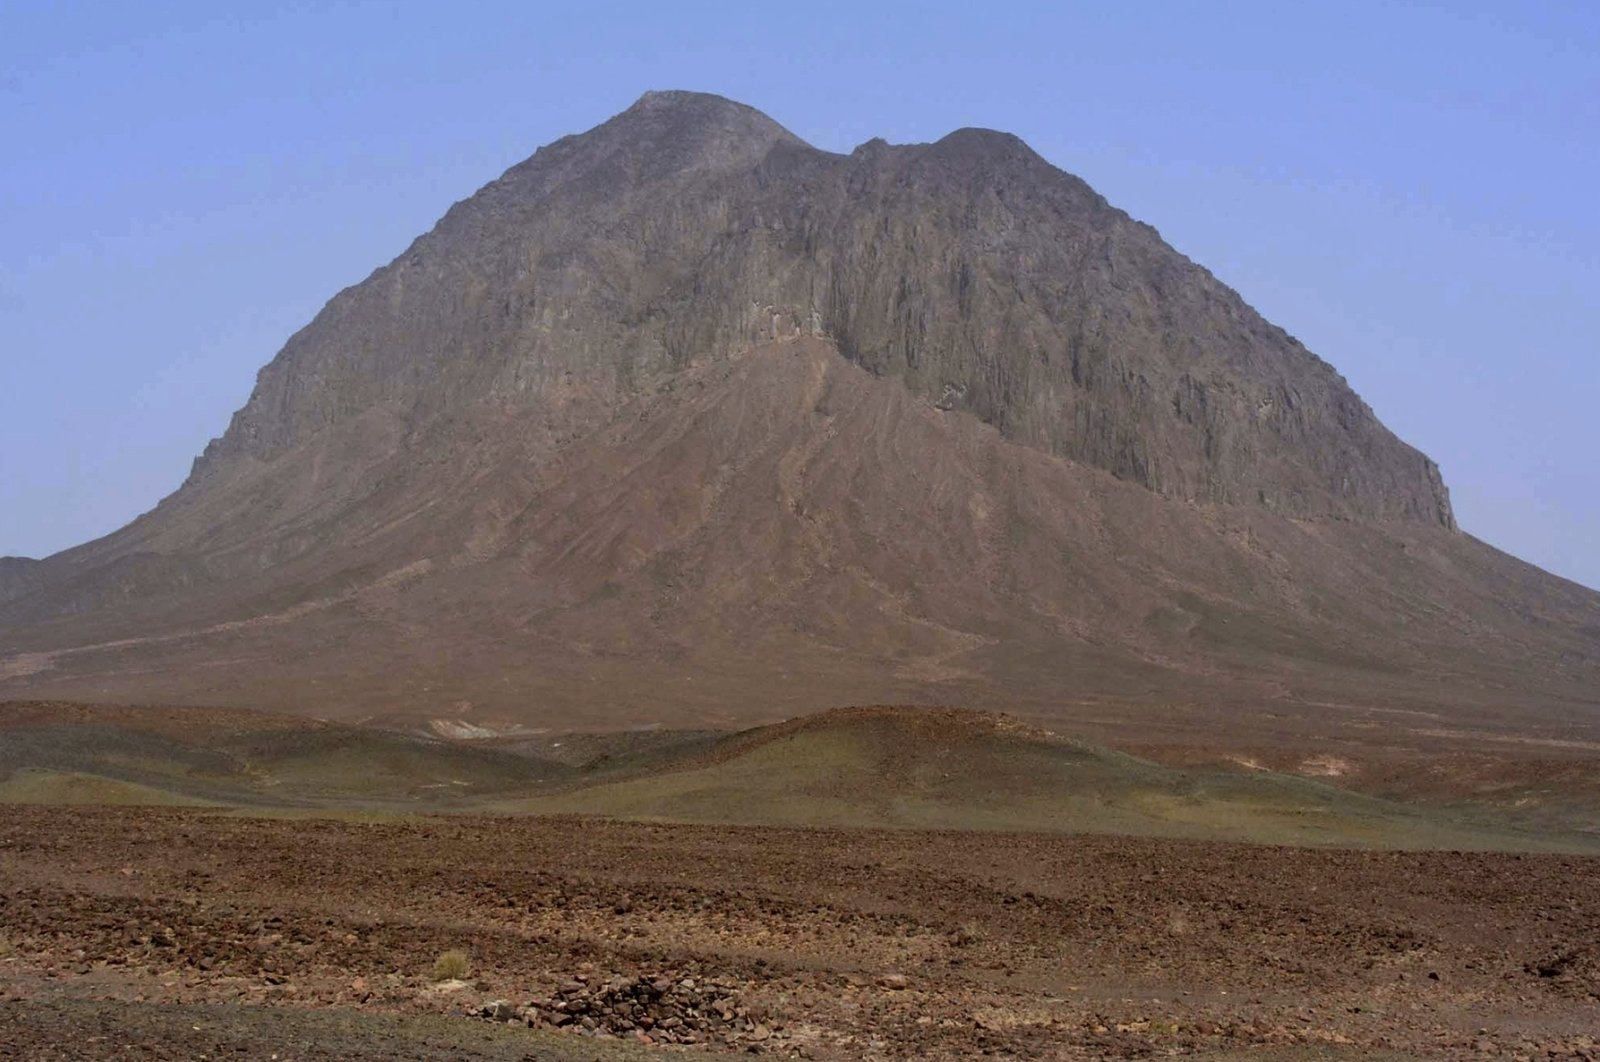 This file photo shows a hill near the gold and copper mine site, in the Reko Diq district in southwestern Pakistan's Baluchistan province, March 18, 2017. (AP Photo)